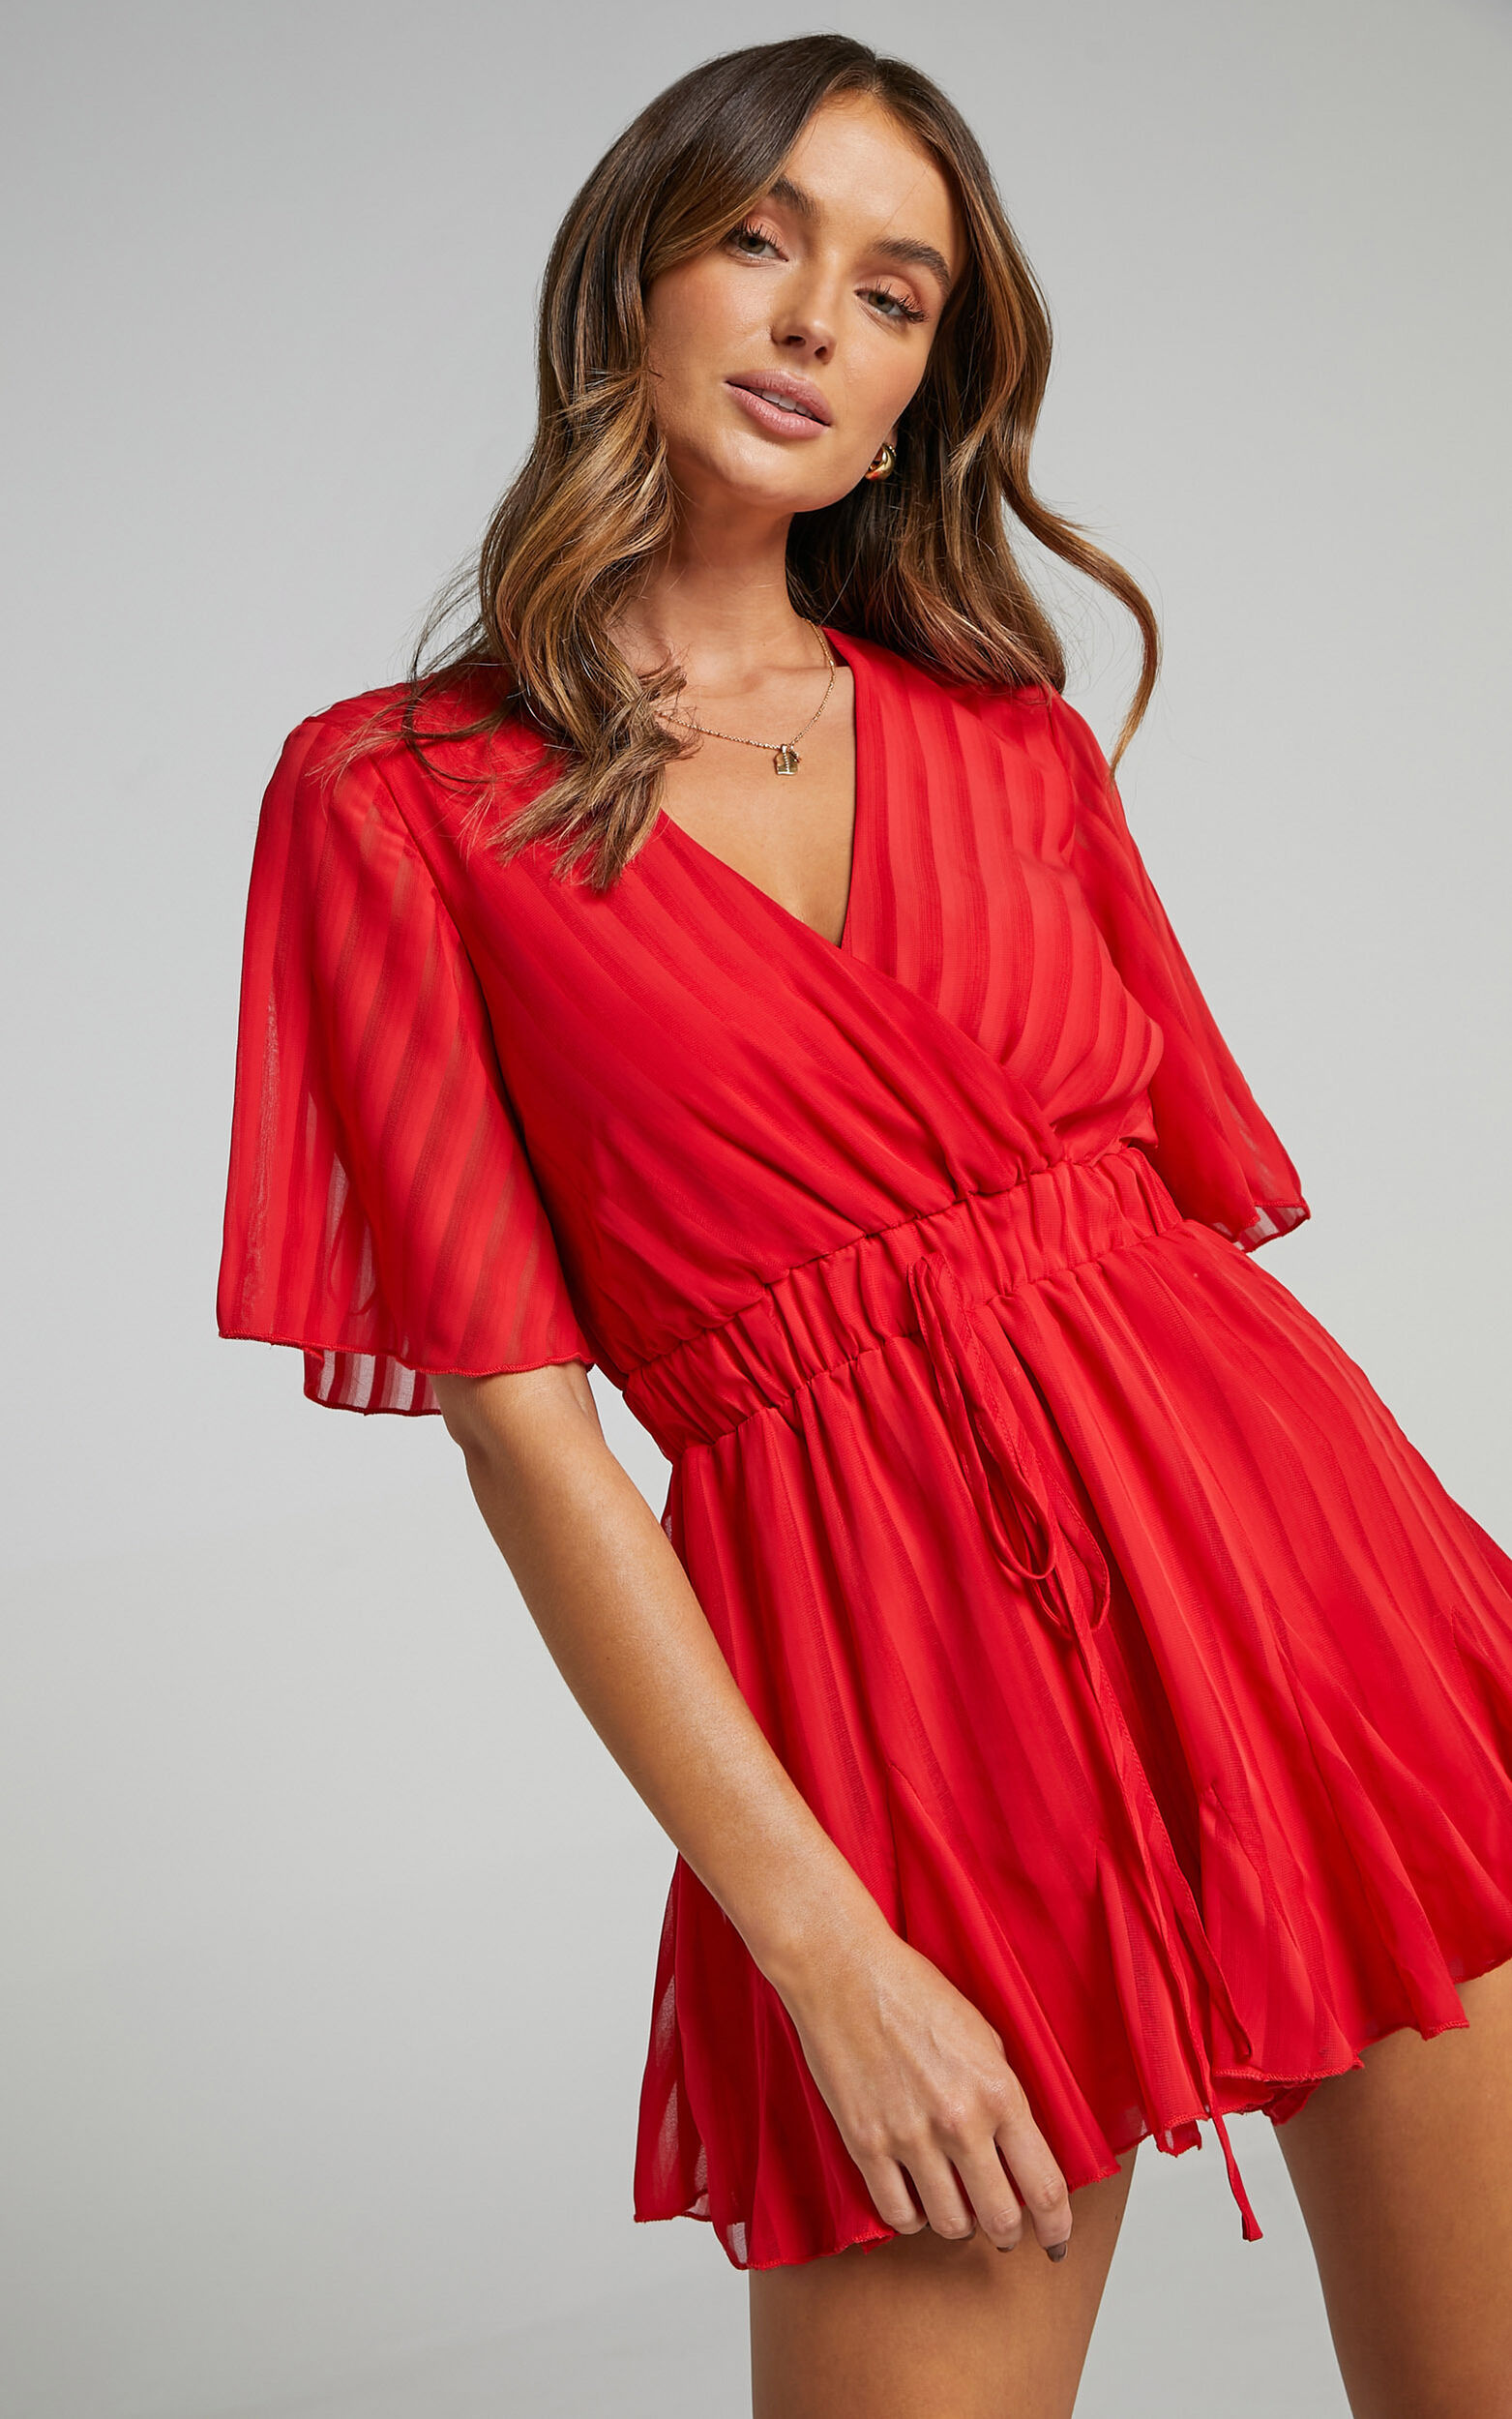 Play On My Heart Playsuit in Red - 04, RED4, super-hi-res image number null